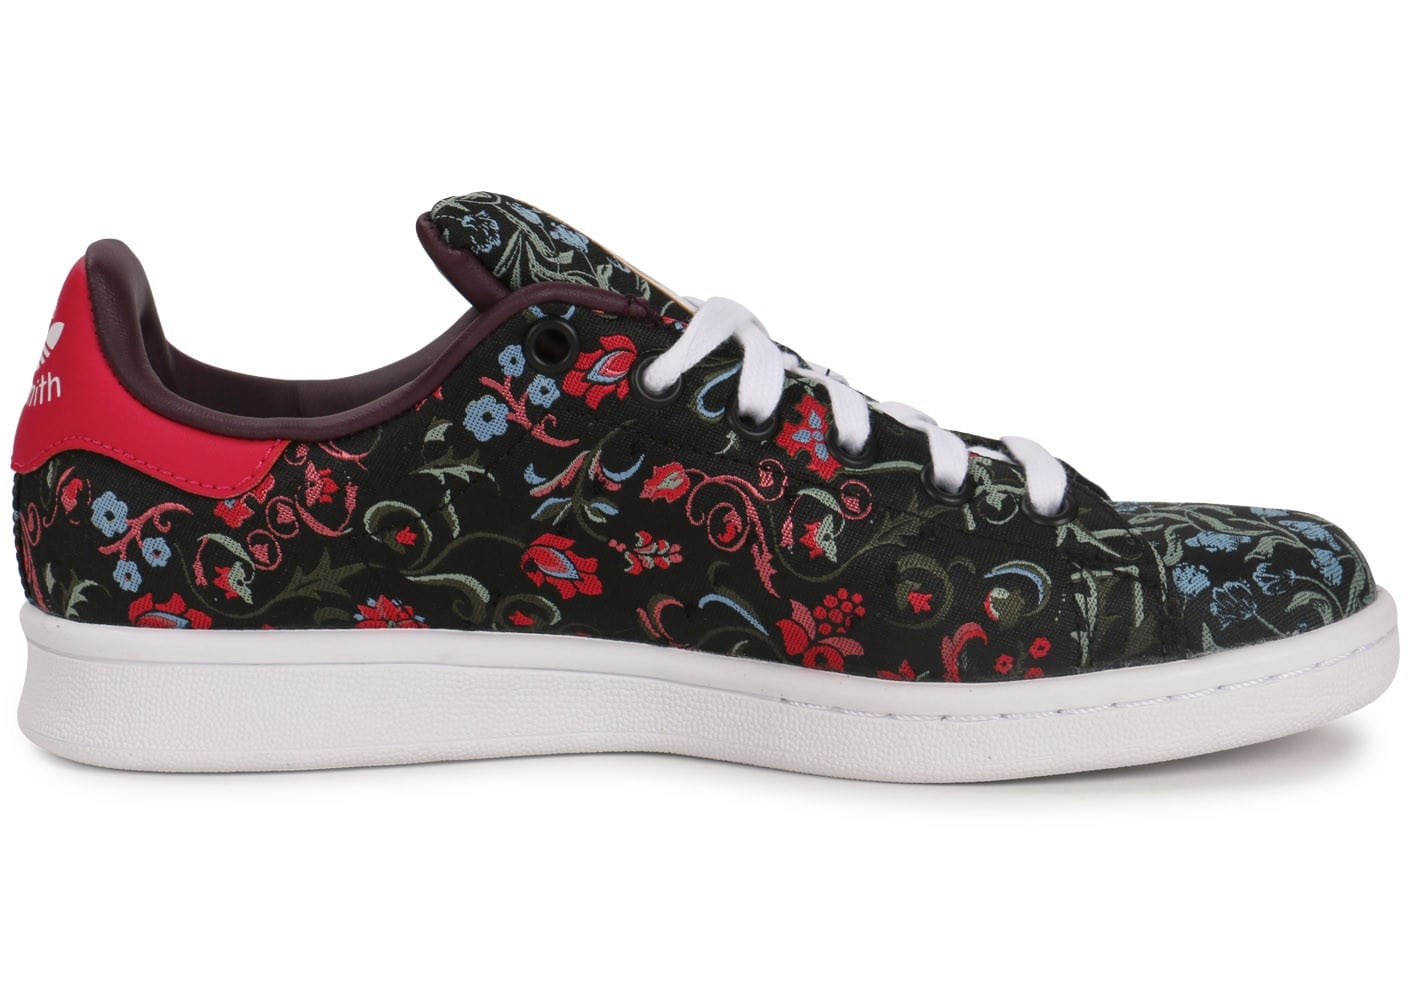 Stan Smith Adidas Flower